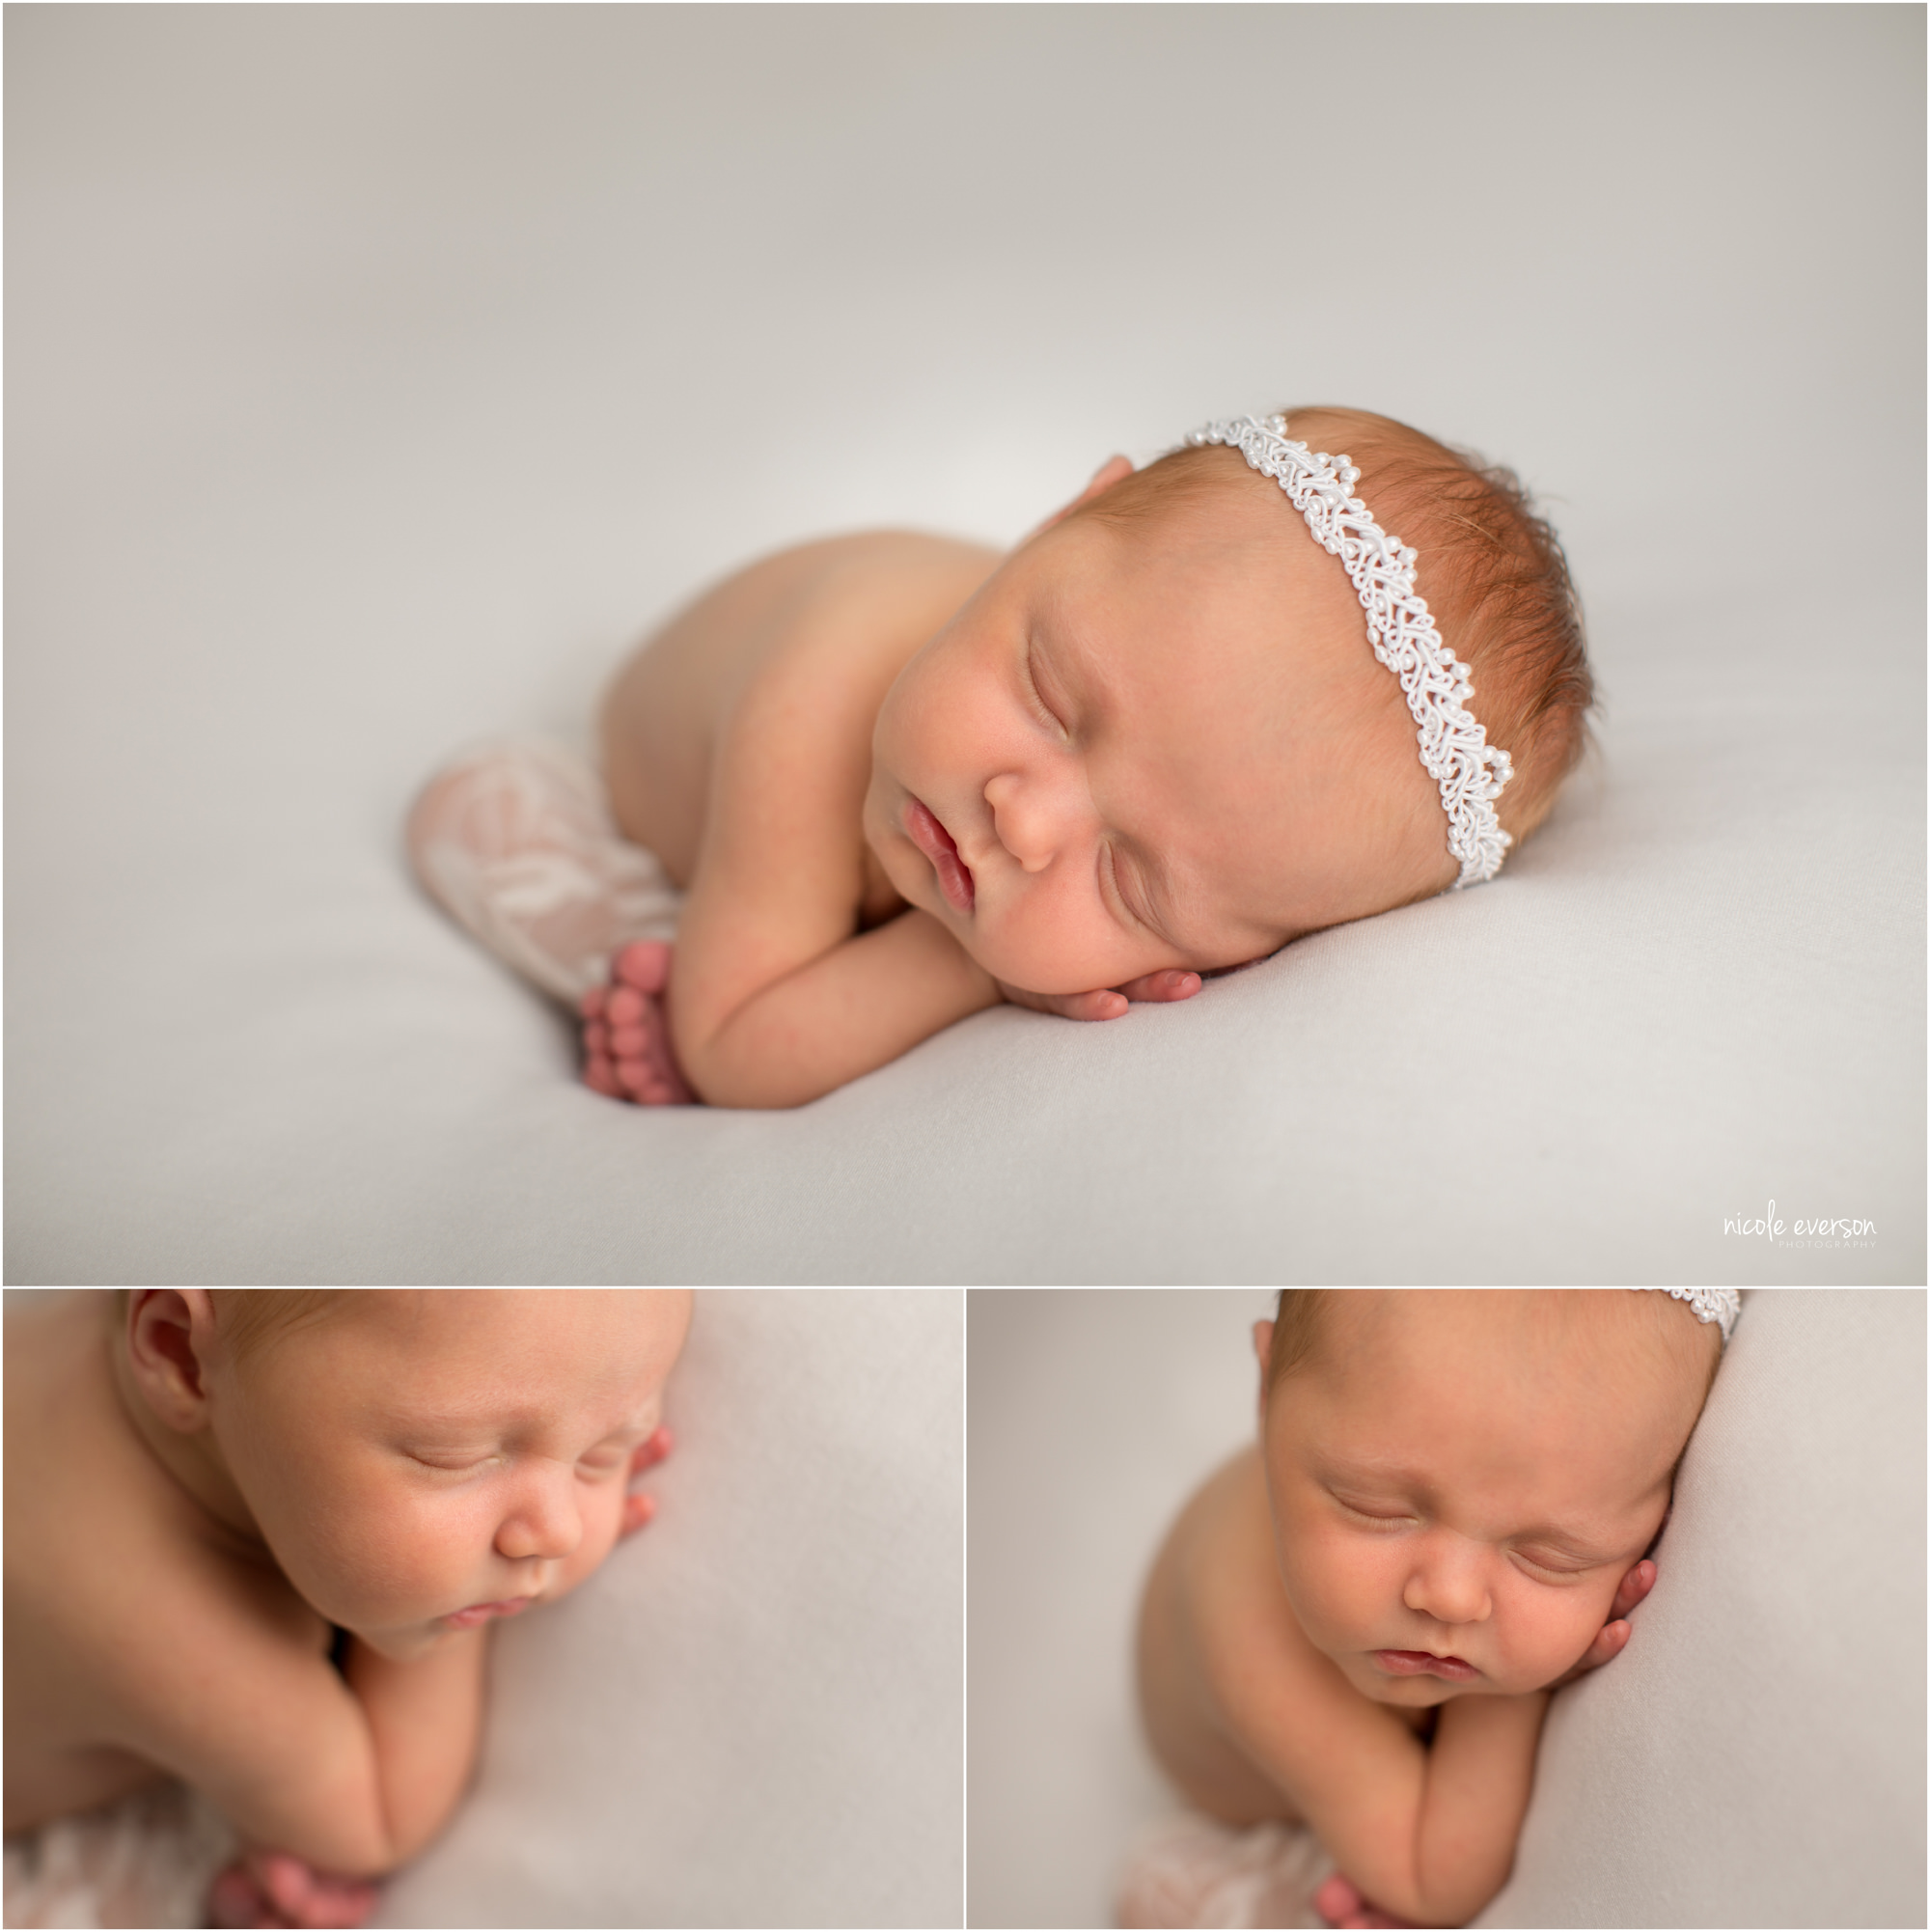 stunning portrait of a baby girl sleeping on a white backdrop